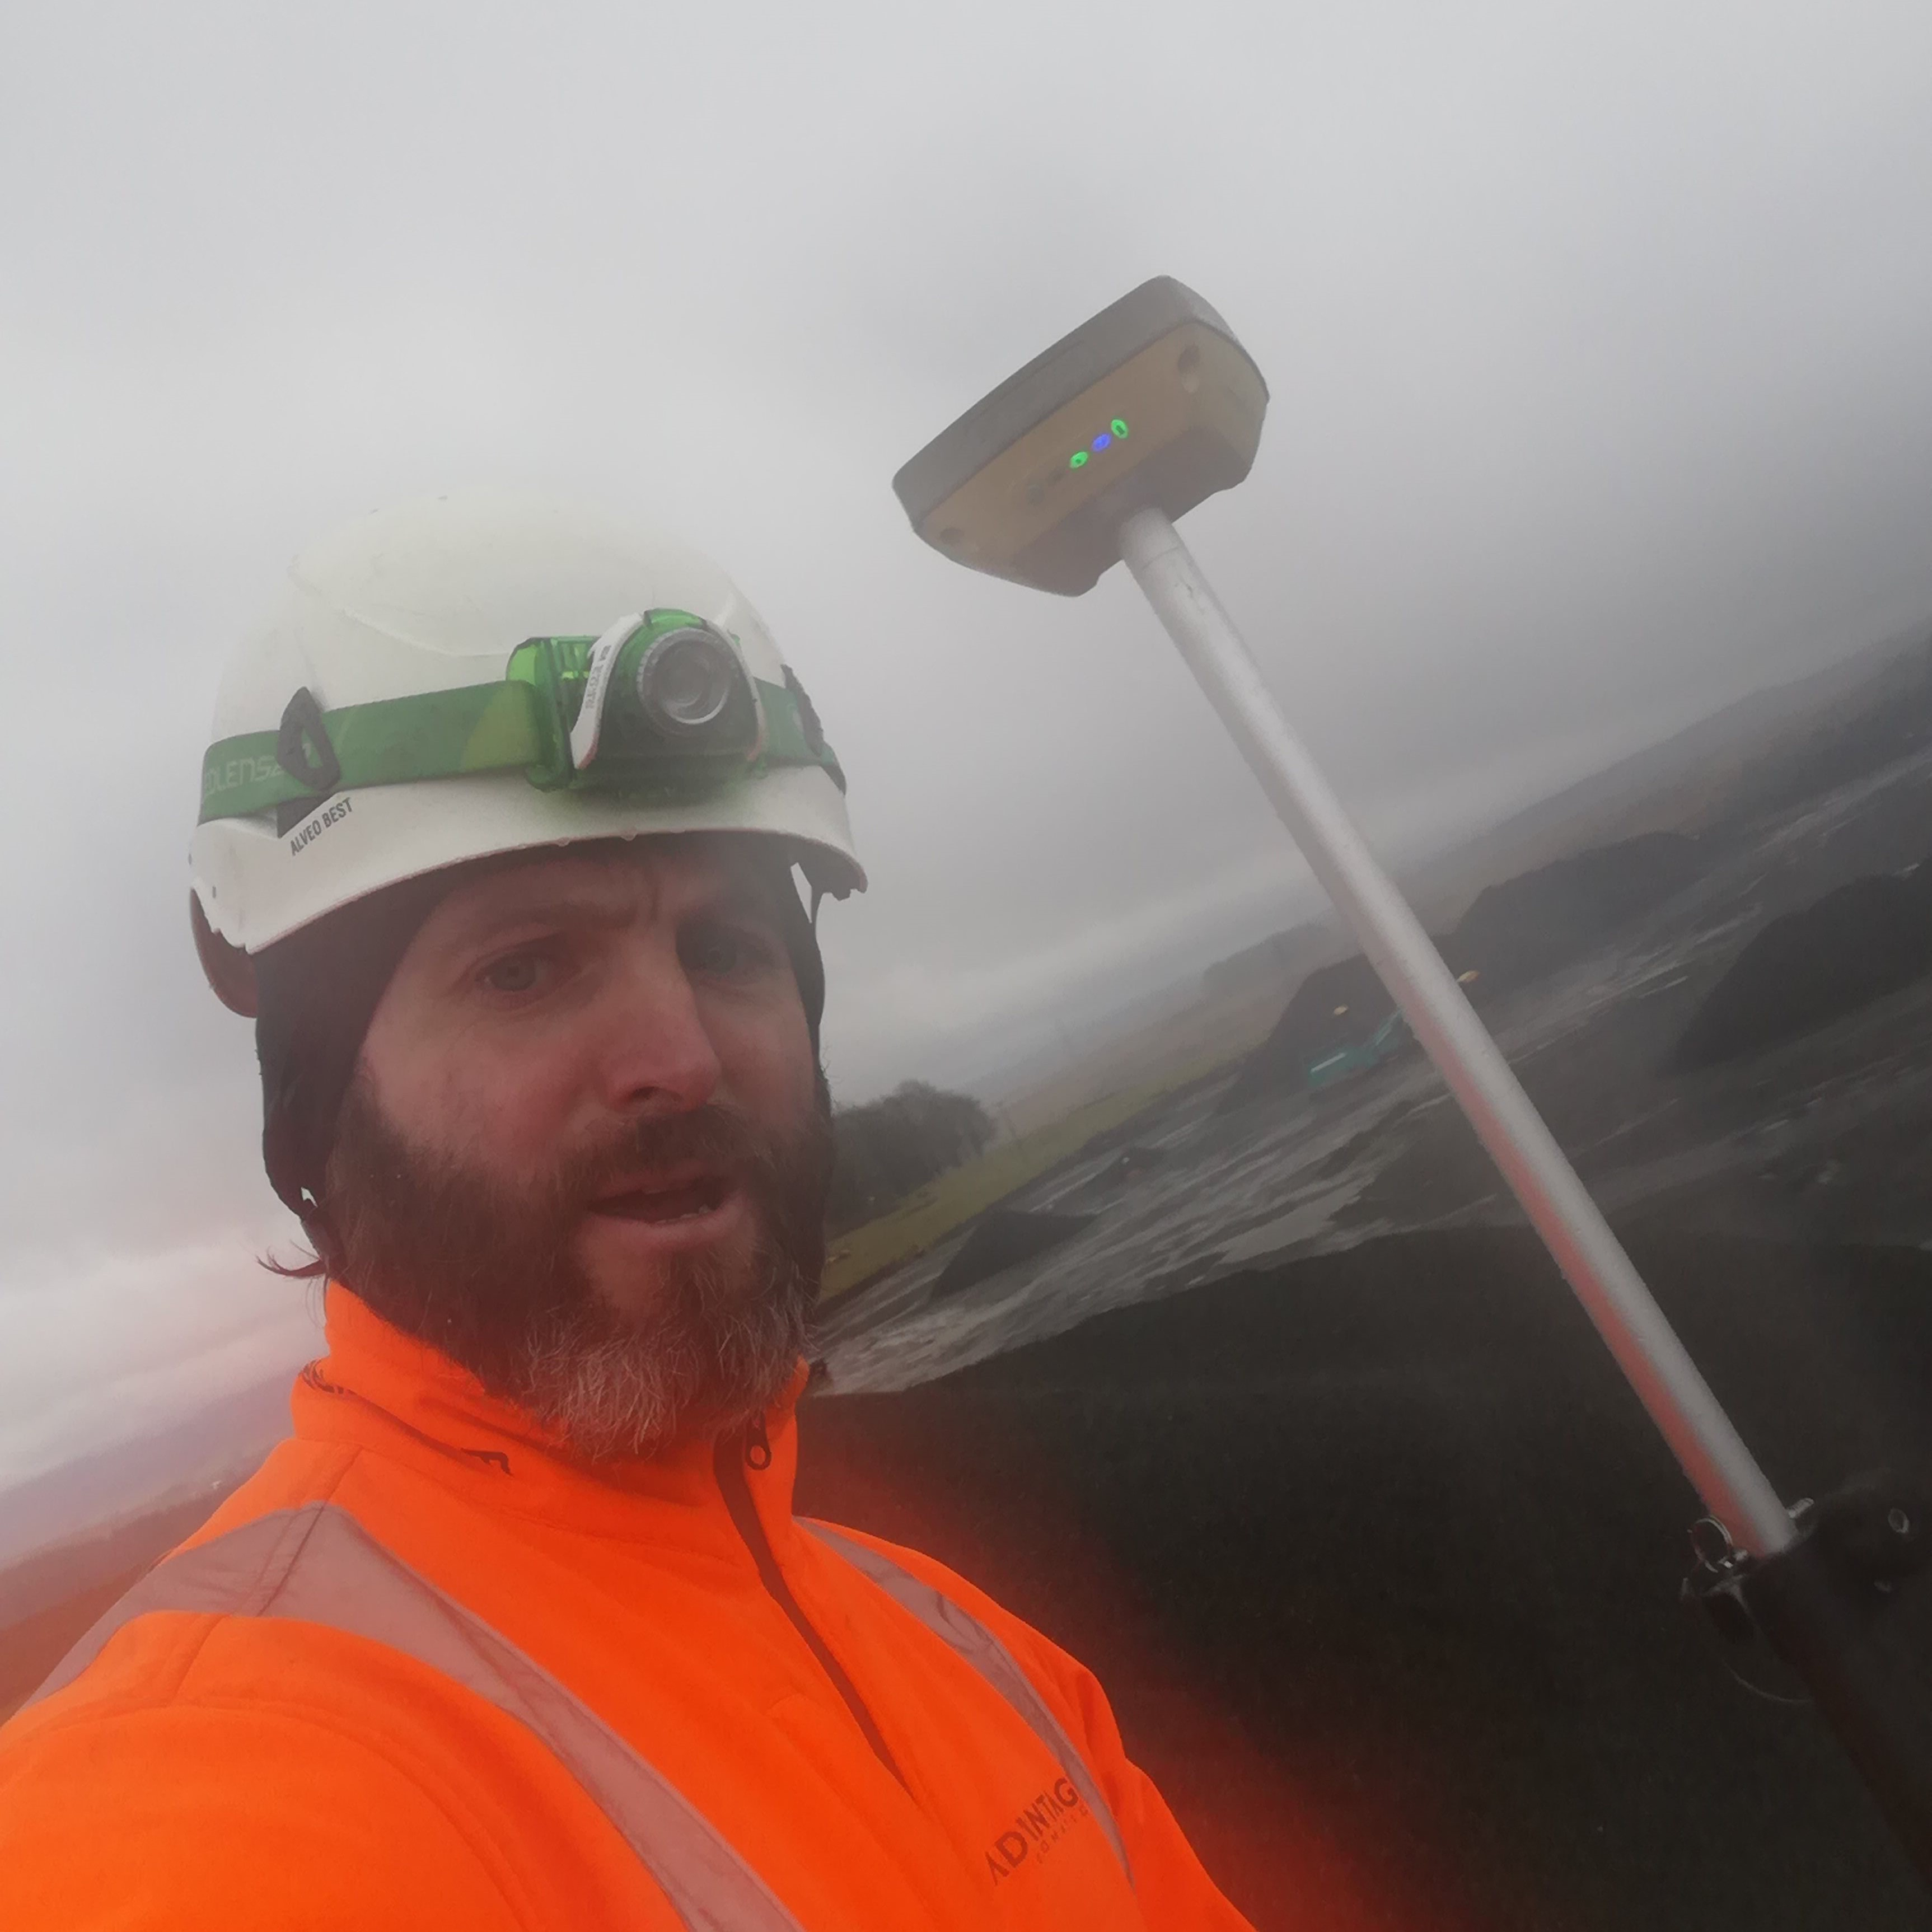 A wet December day surveying stocks in Cumbria